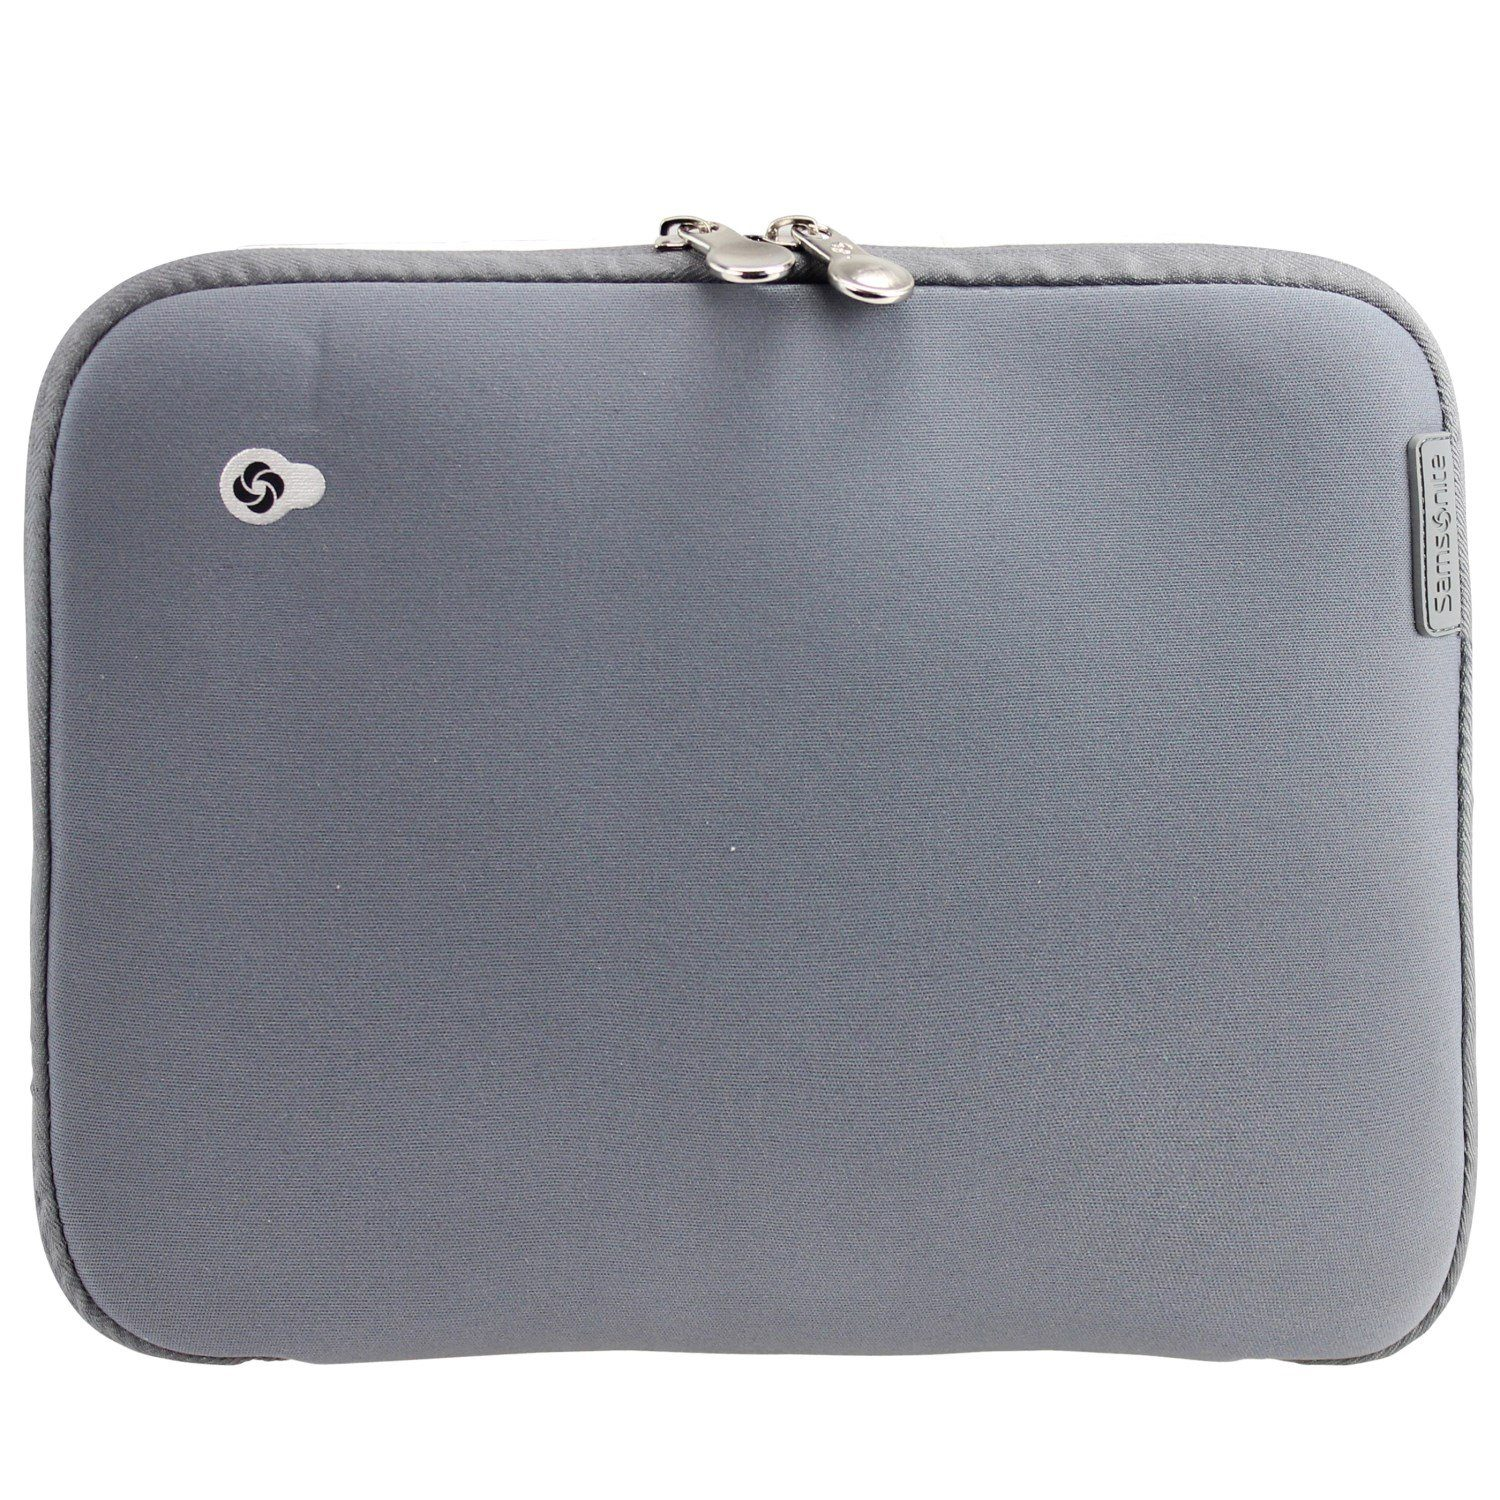 Samsonite Samsonite Travel Accessories Laptop-Hülle 40 cm